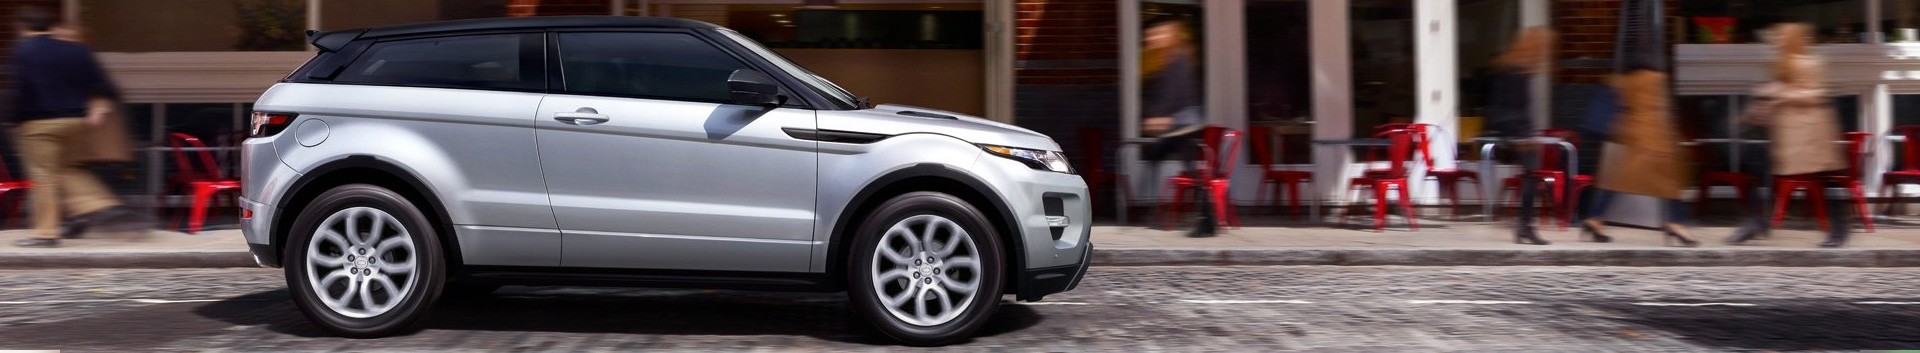 Land Rover - Vehicle on Street by Cafe